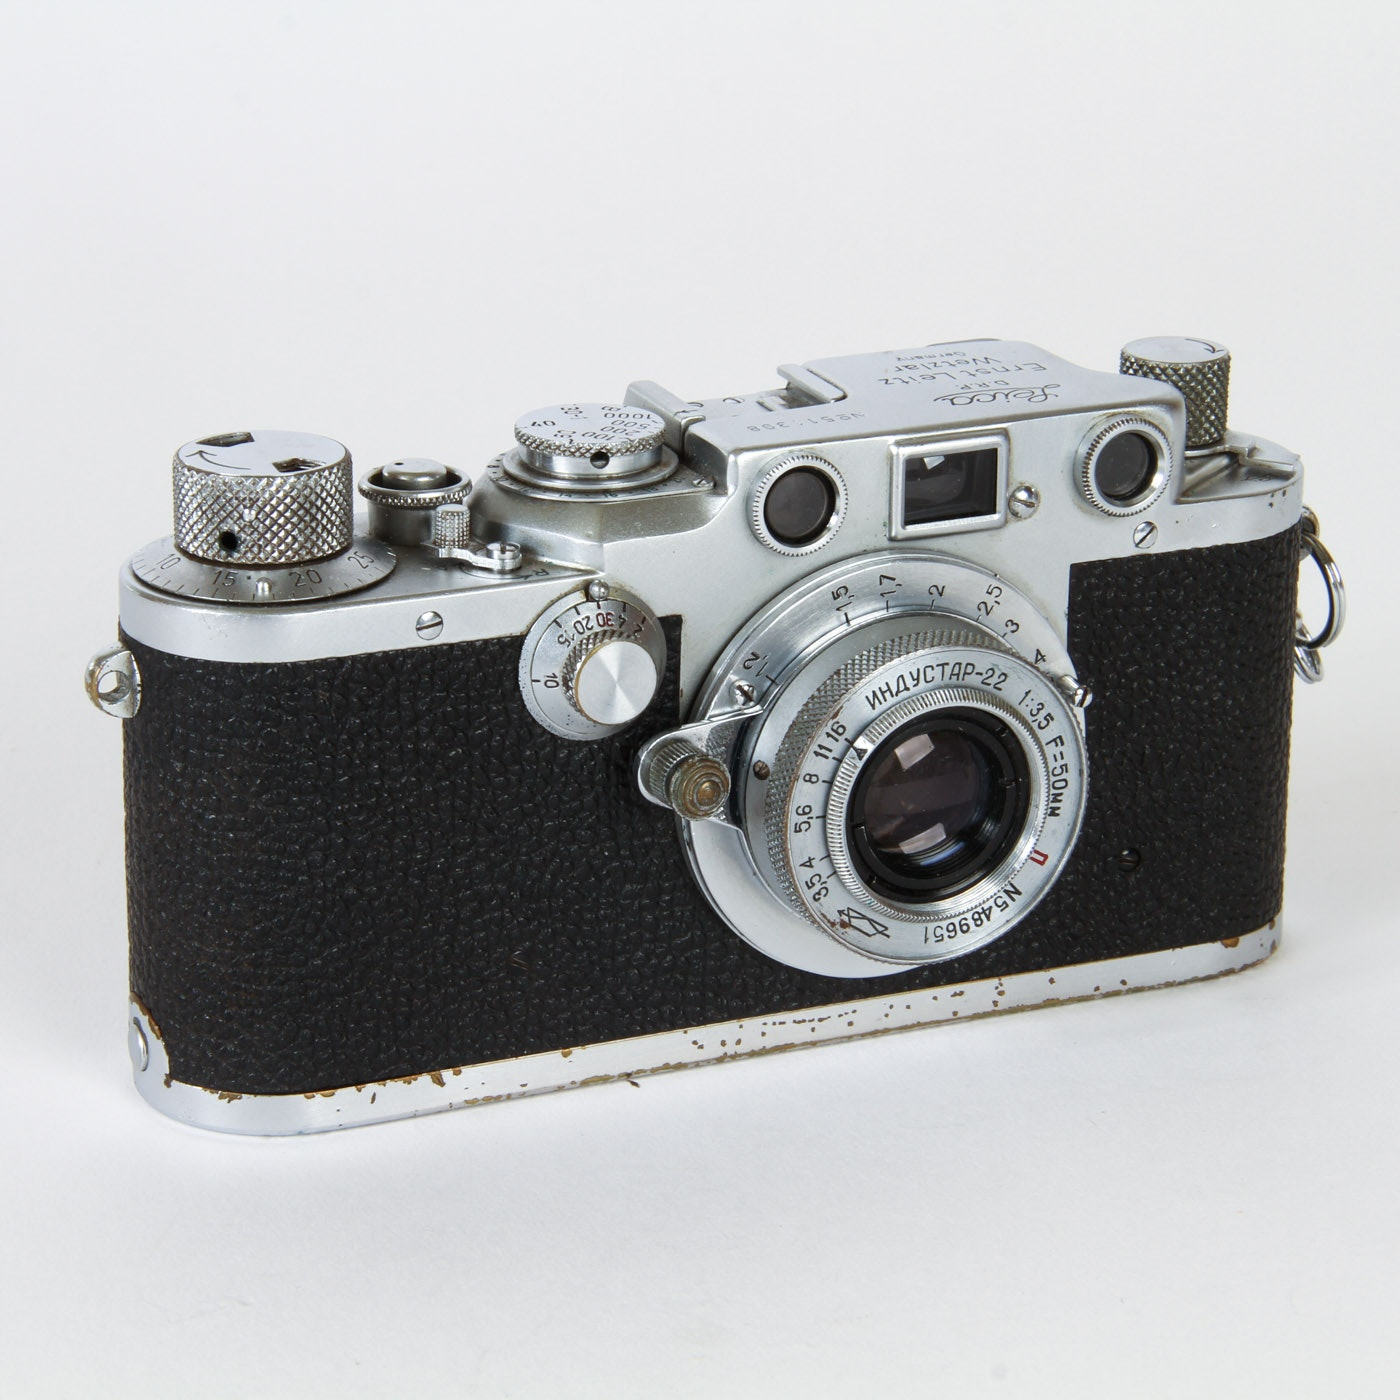 Vintage Leica D.R.P. Ernst Leitz Wezlar Camera and a Pair of Manuals